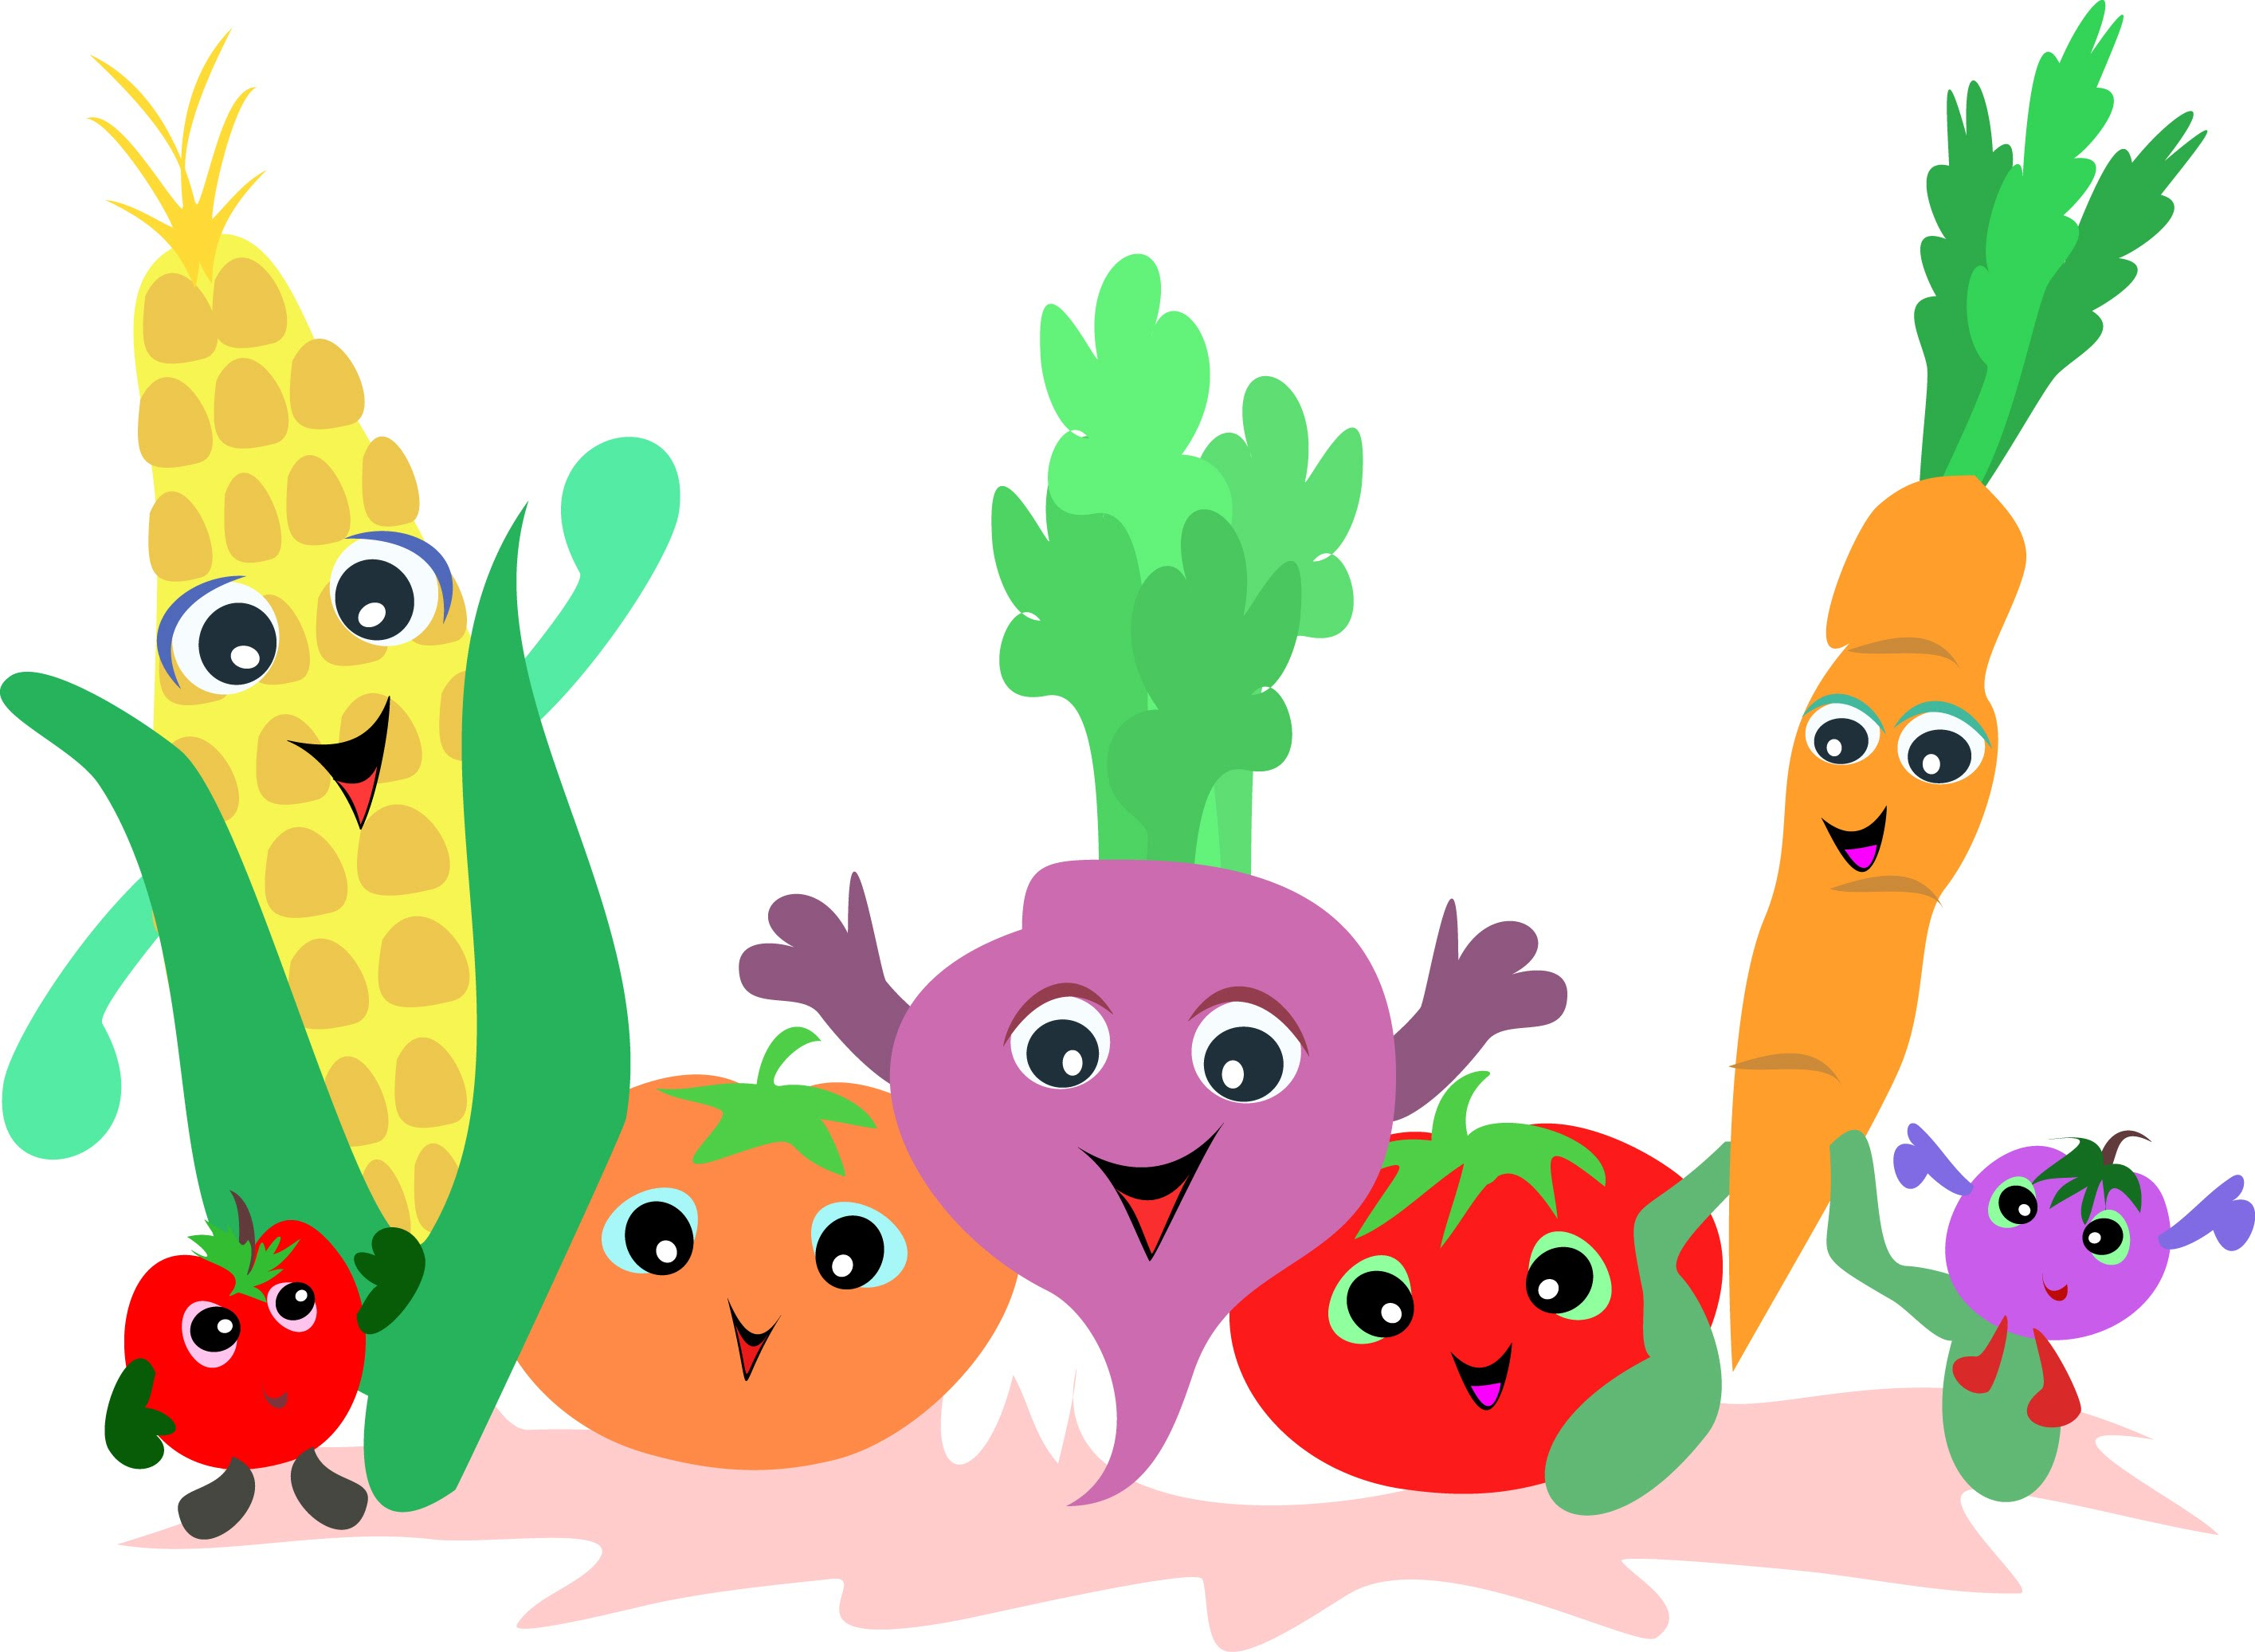 Vegetable Images For Kids.